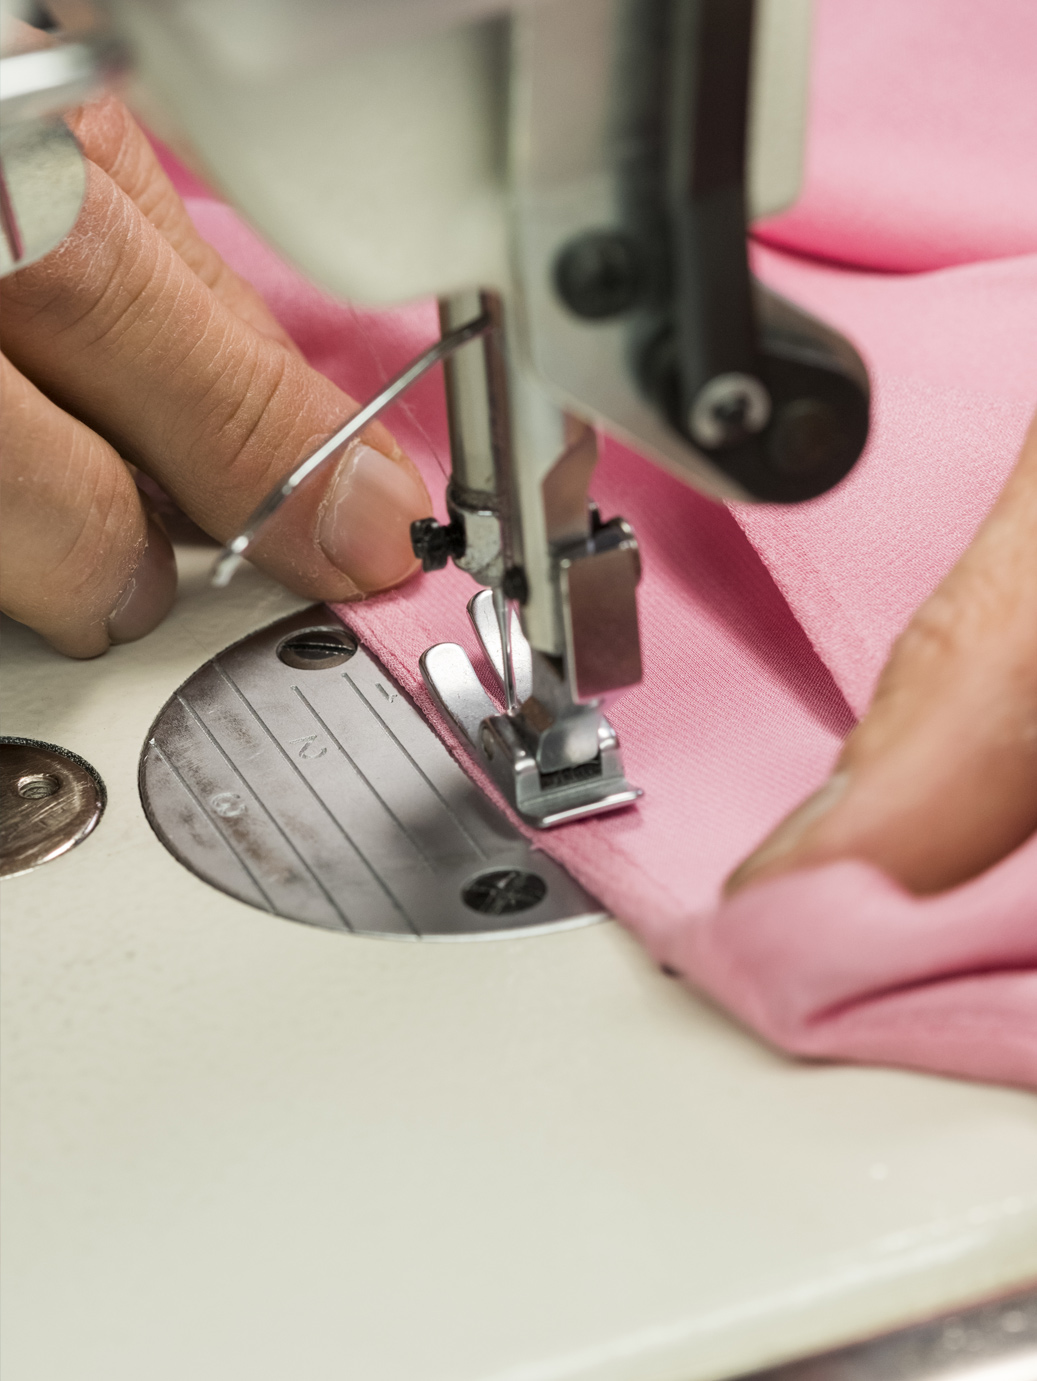 Sewing machine stitching pink fabric